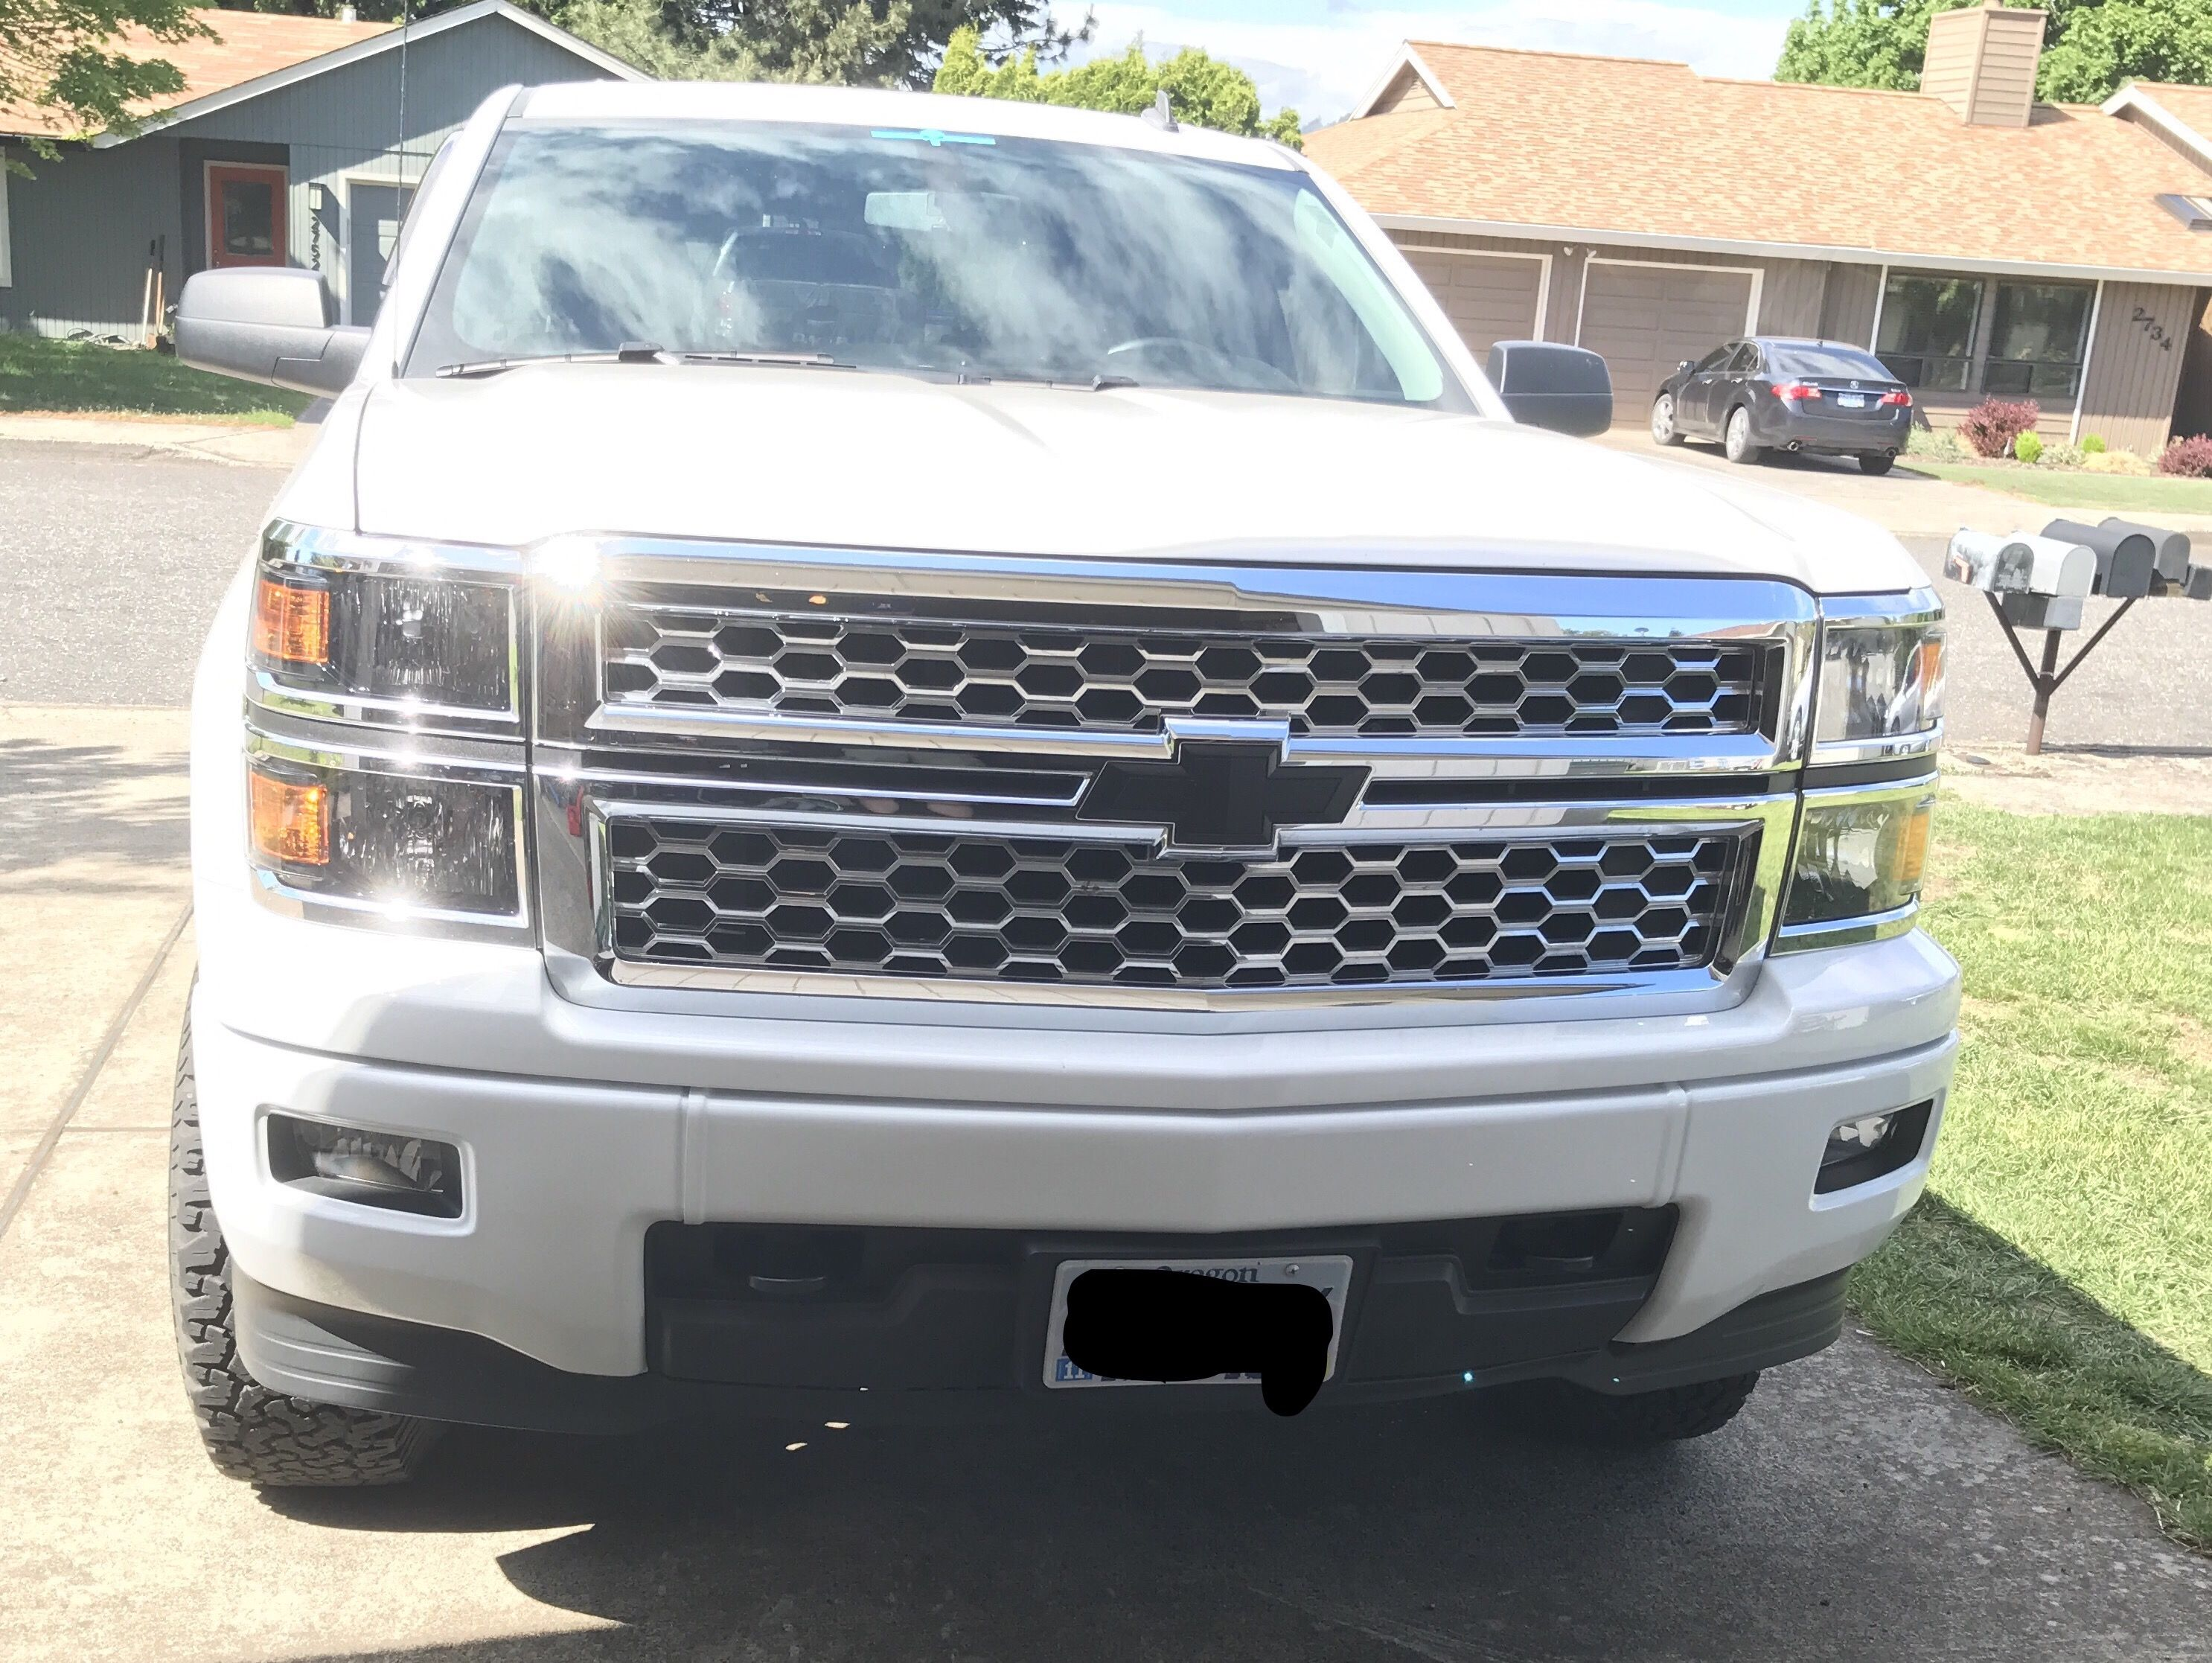 Covered the chrome bumpers with covers 2014 chevy, Chevy